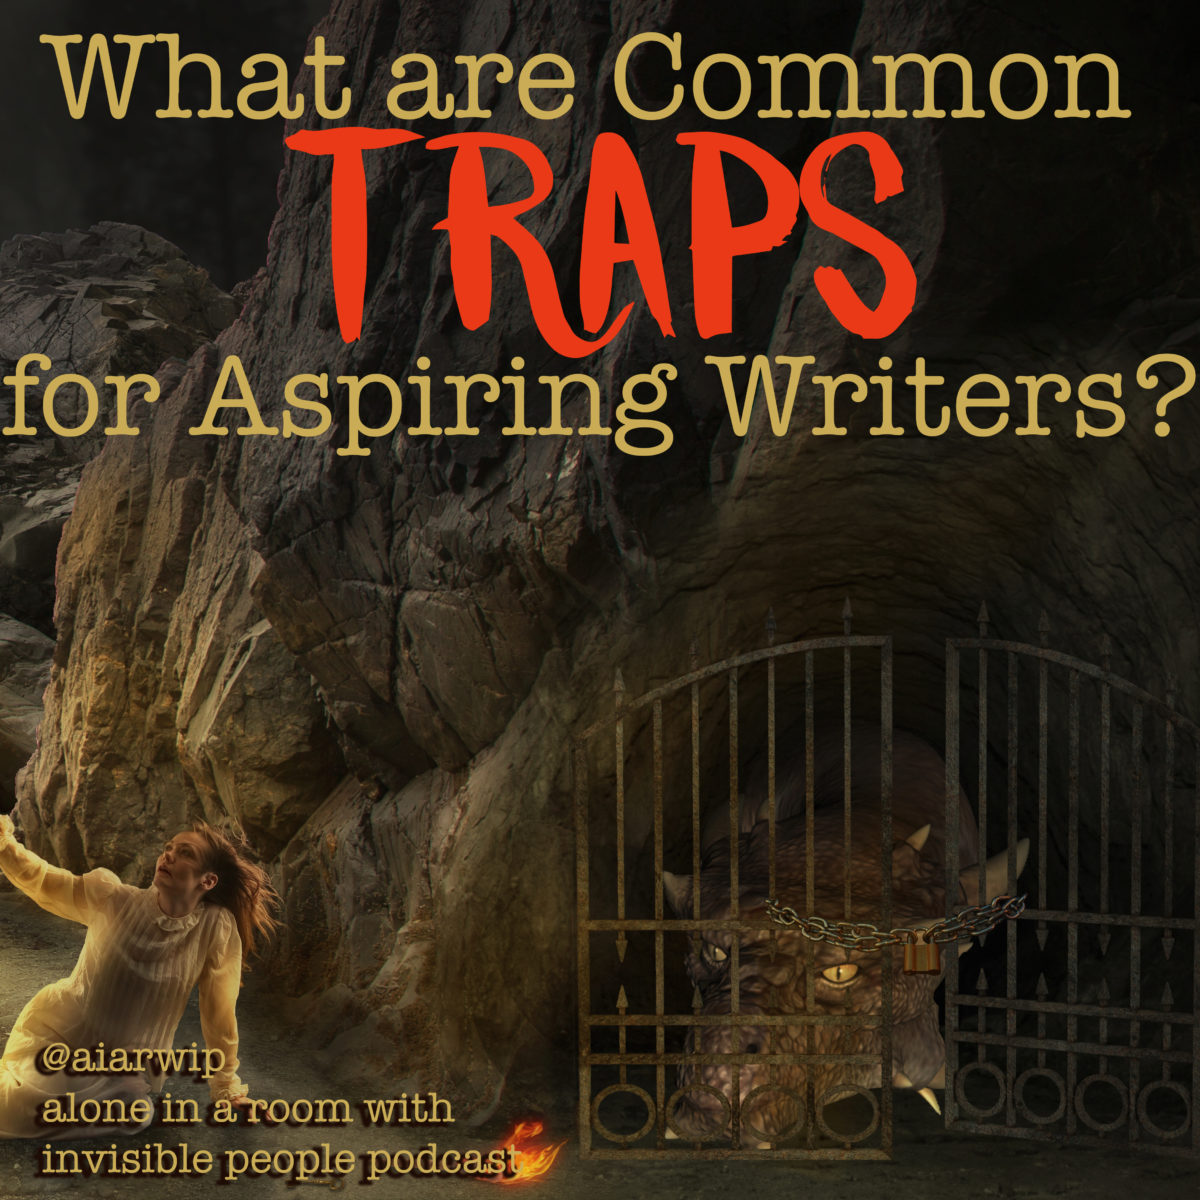 Episode 66: What are Common Traps for Aspiring Writers?